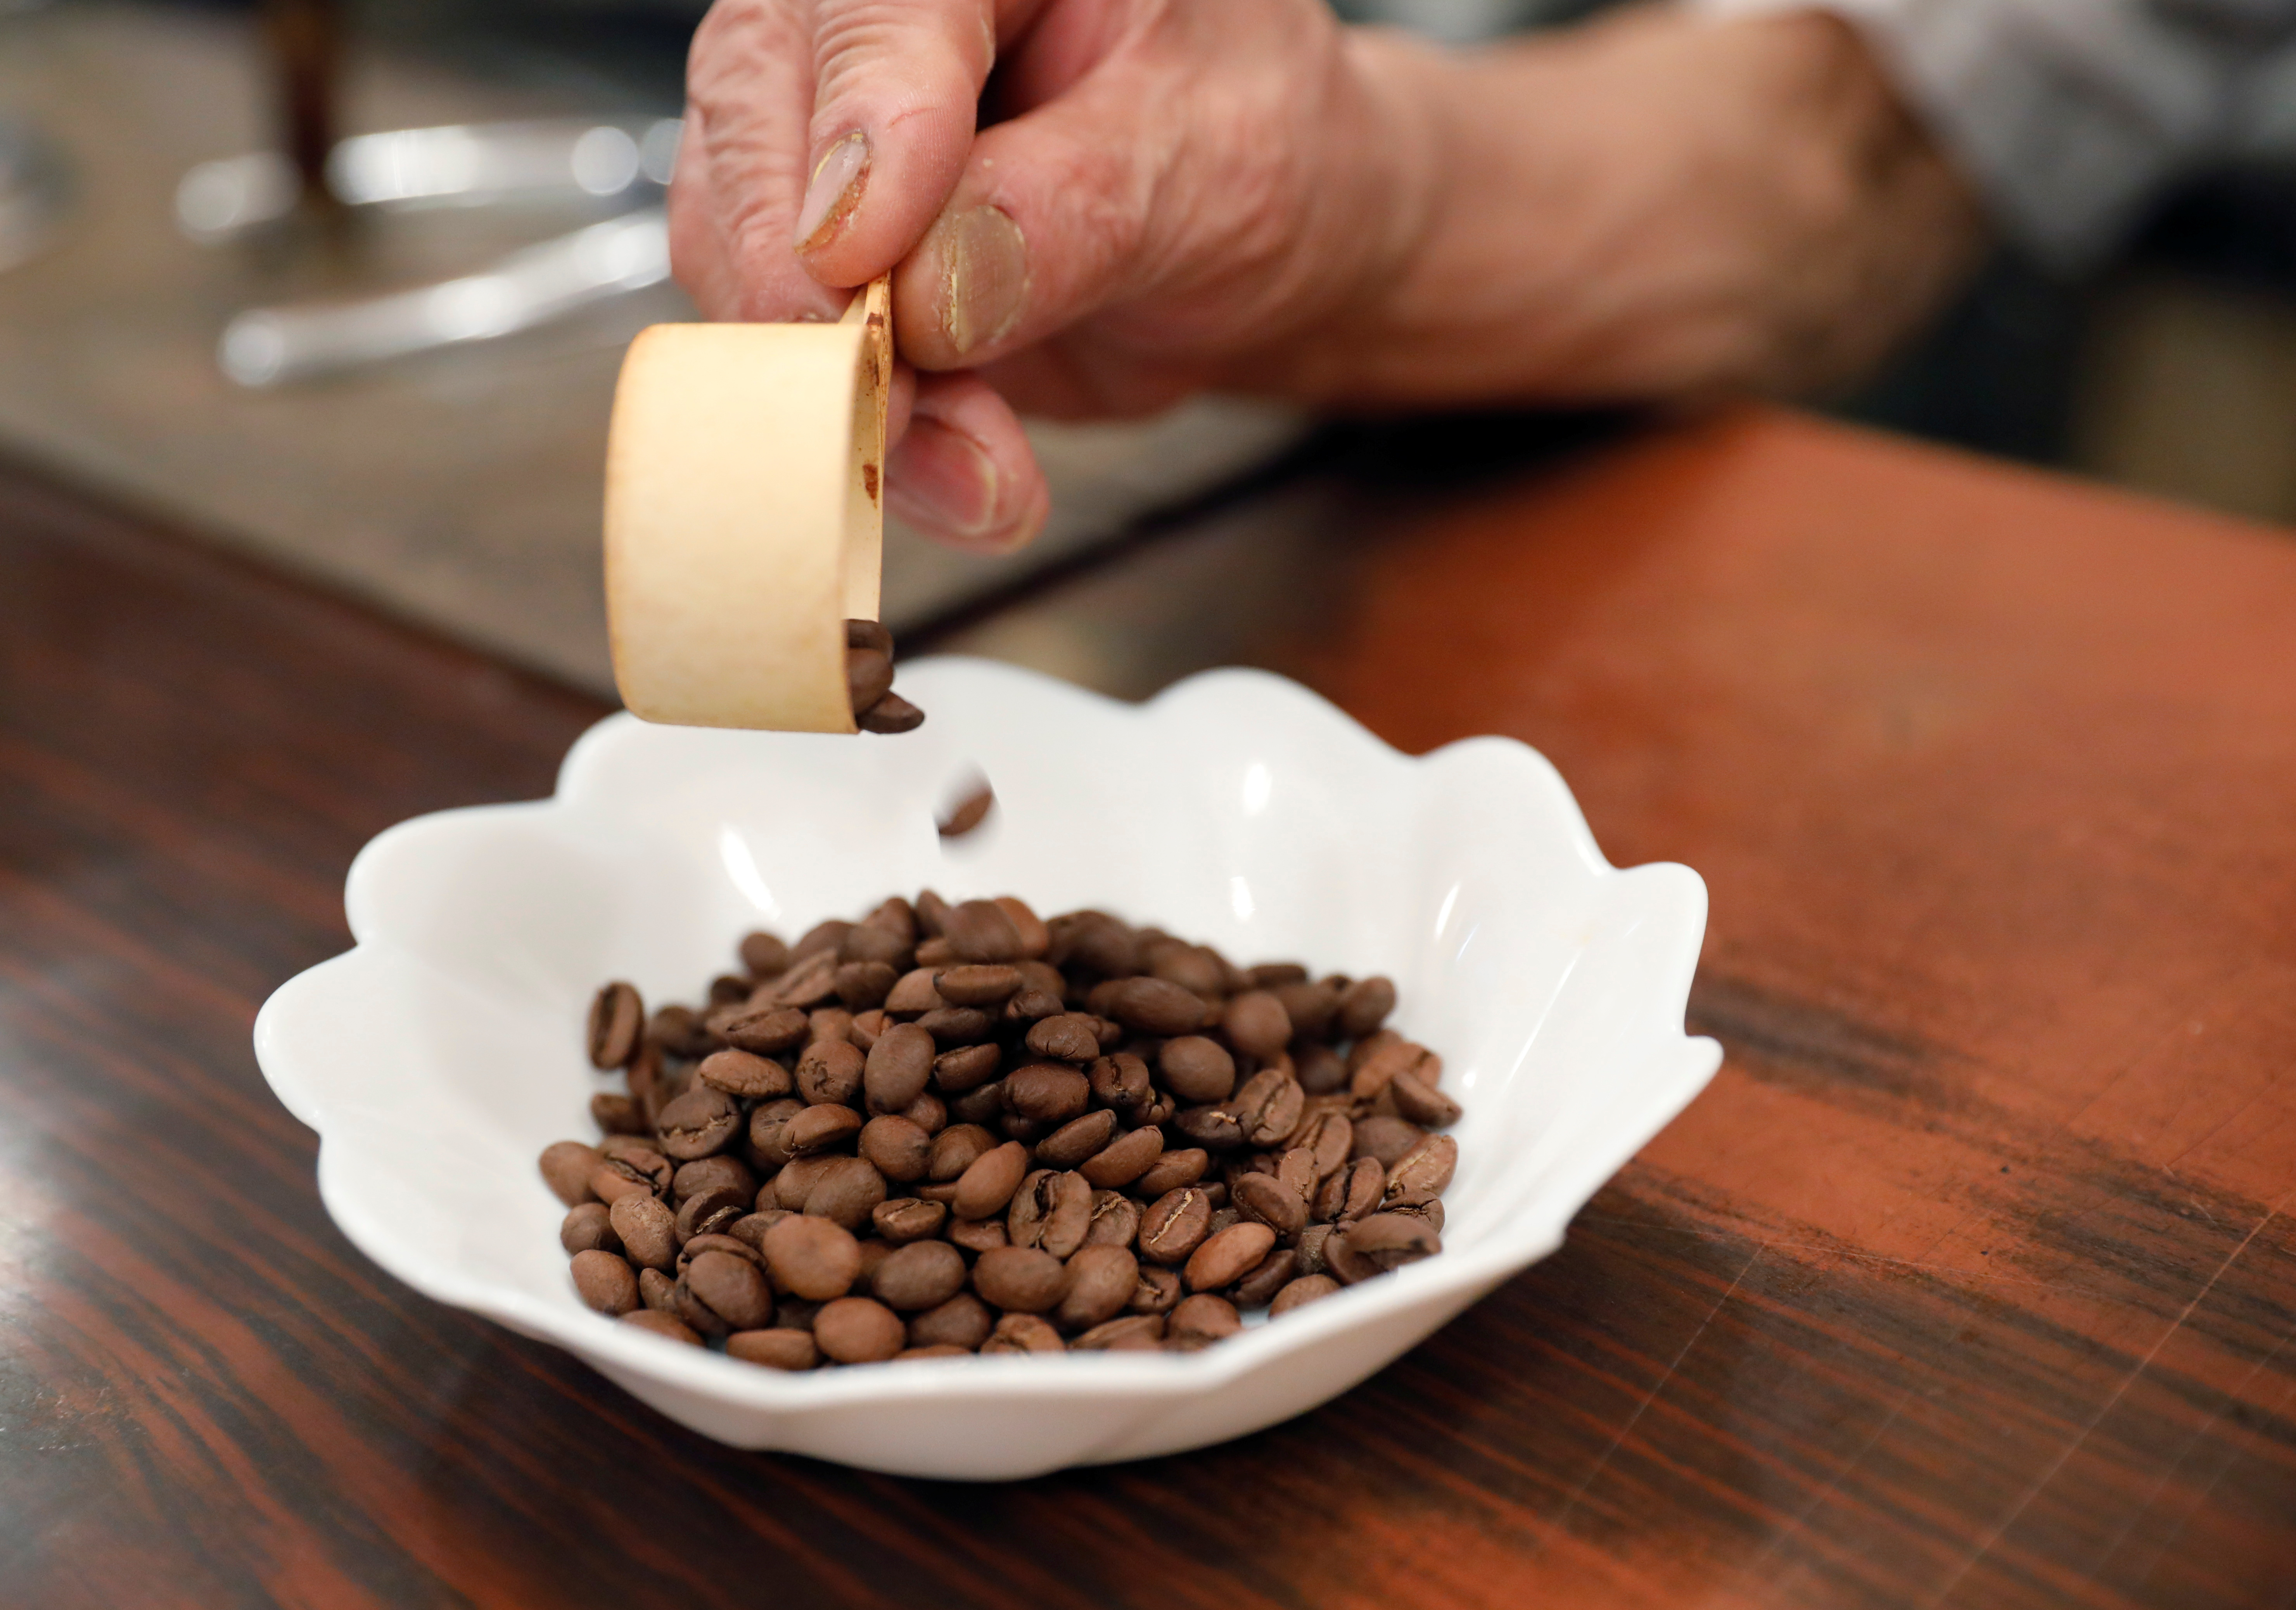 Shizuo Mori, the owner of Heckeln coffee shop prepares to grind coffee beans at his shop in Tokyo, Japan, October 8, 2021. REUTERS/Kim Kyung-Hoon